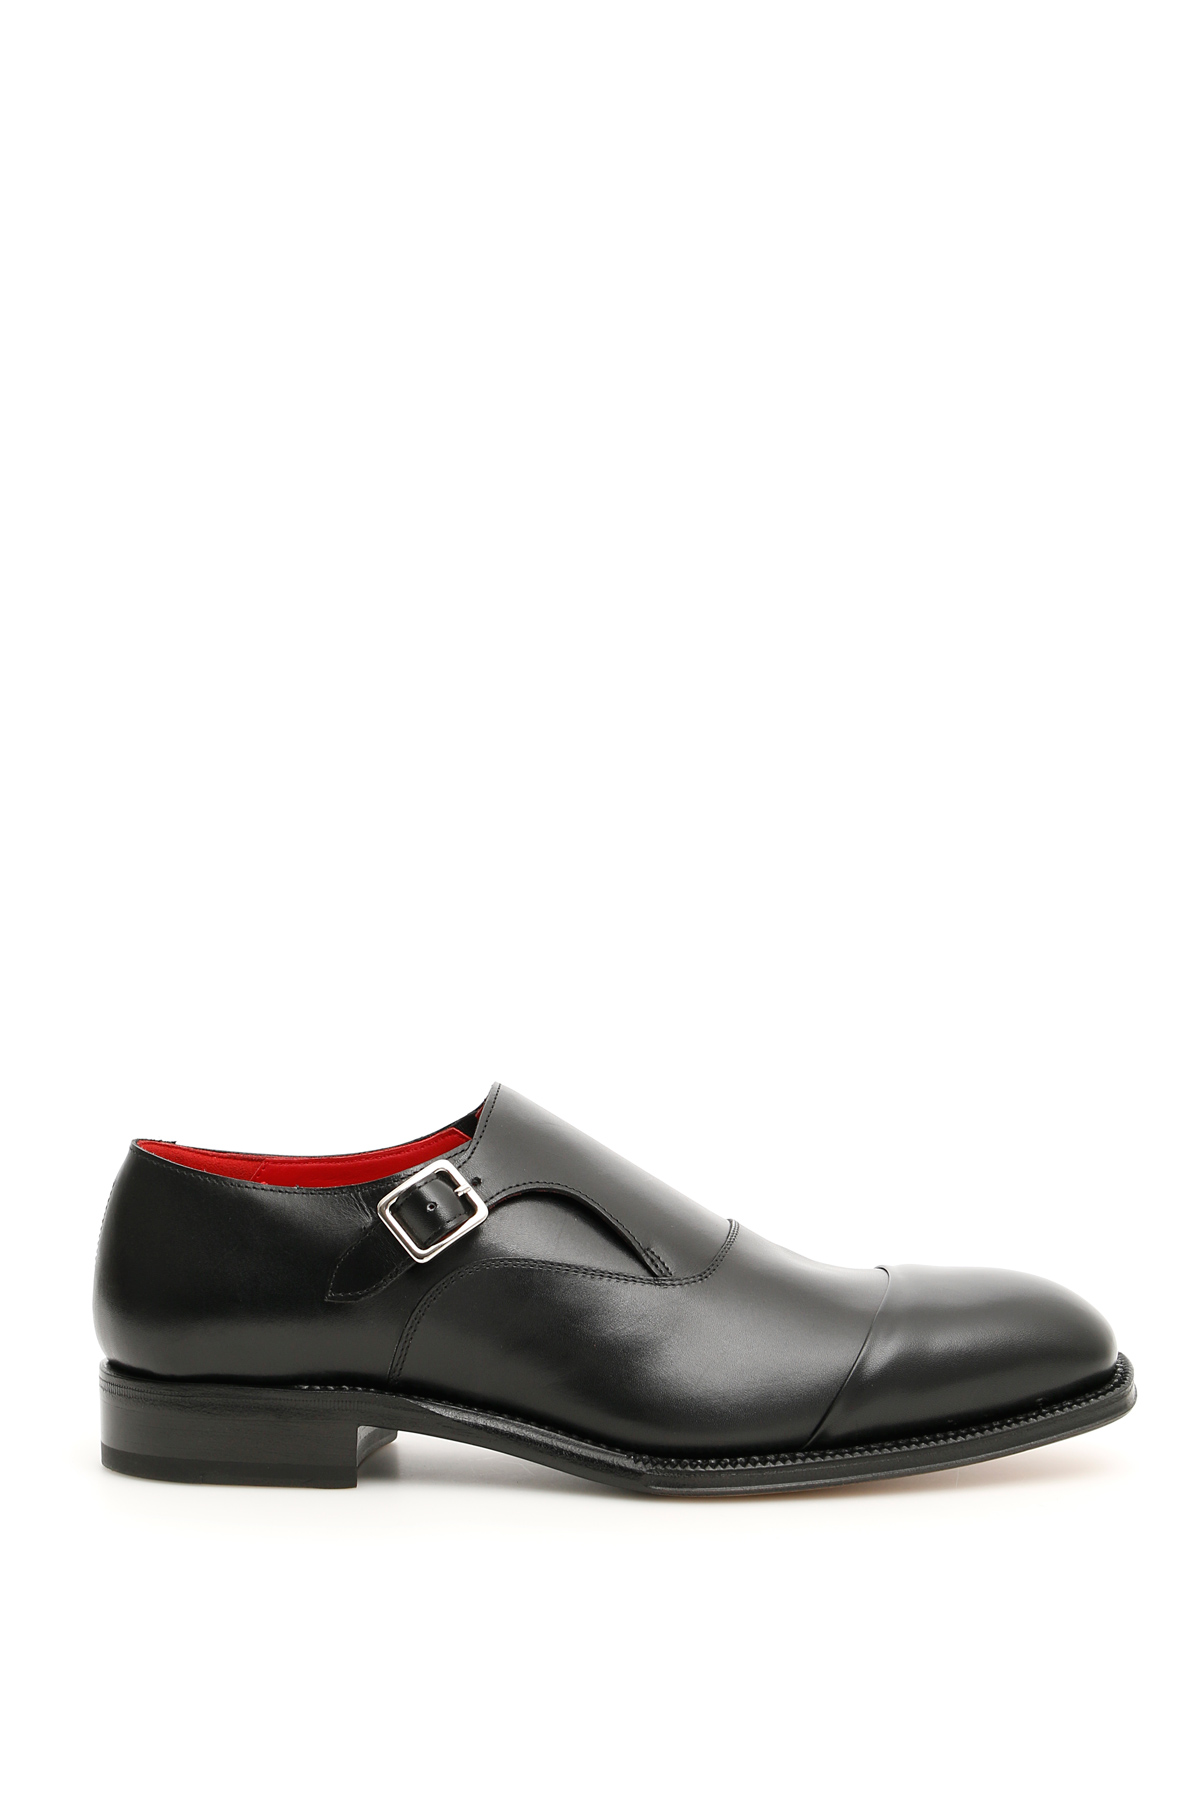 ALEXANDER MCQUEEN MONK SHOES 39 Black Leather